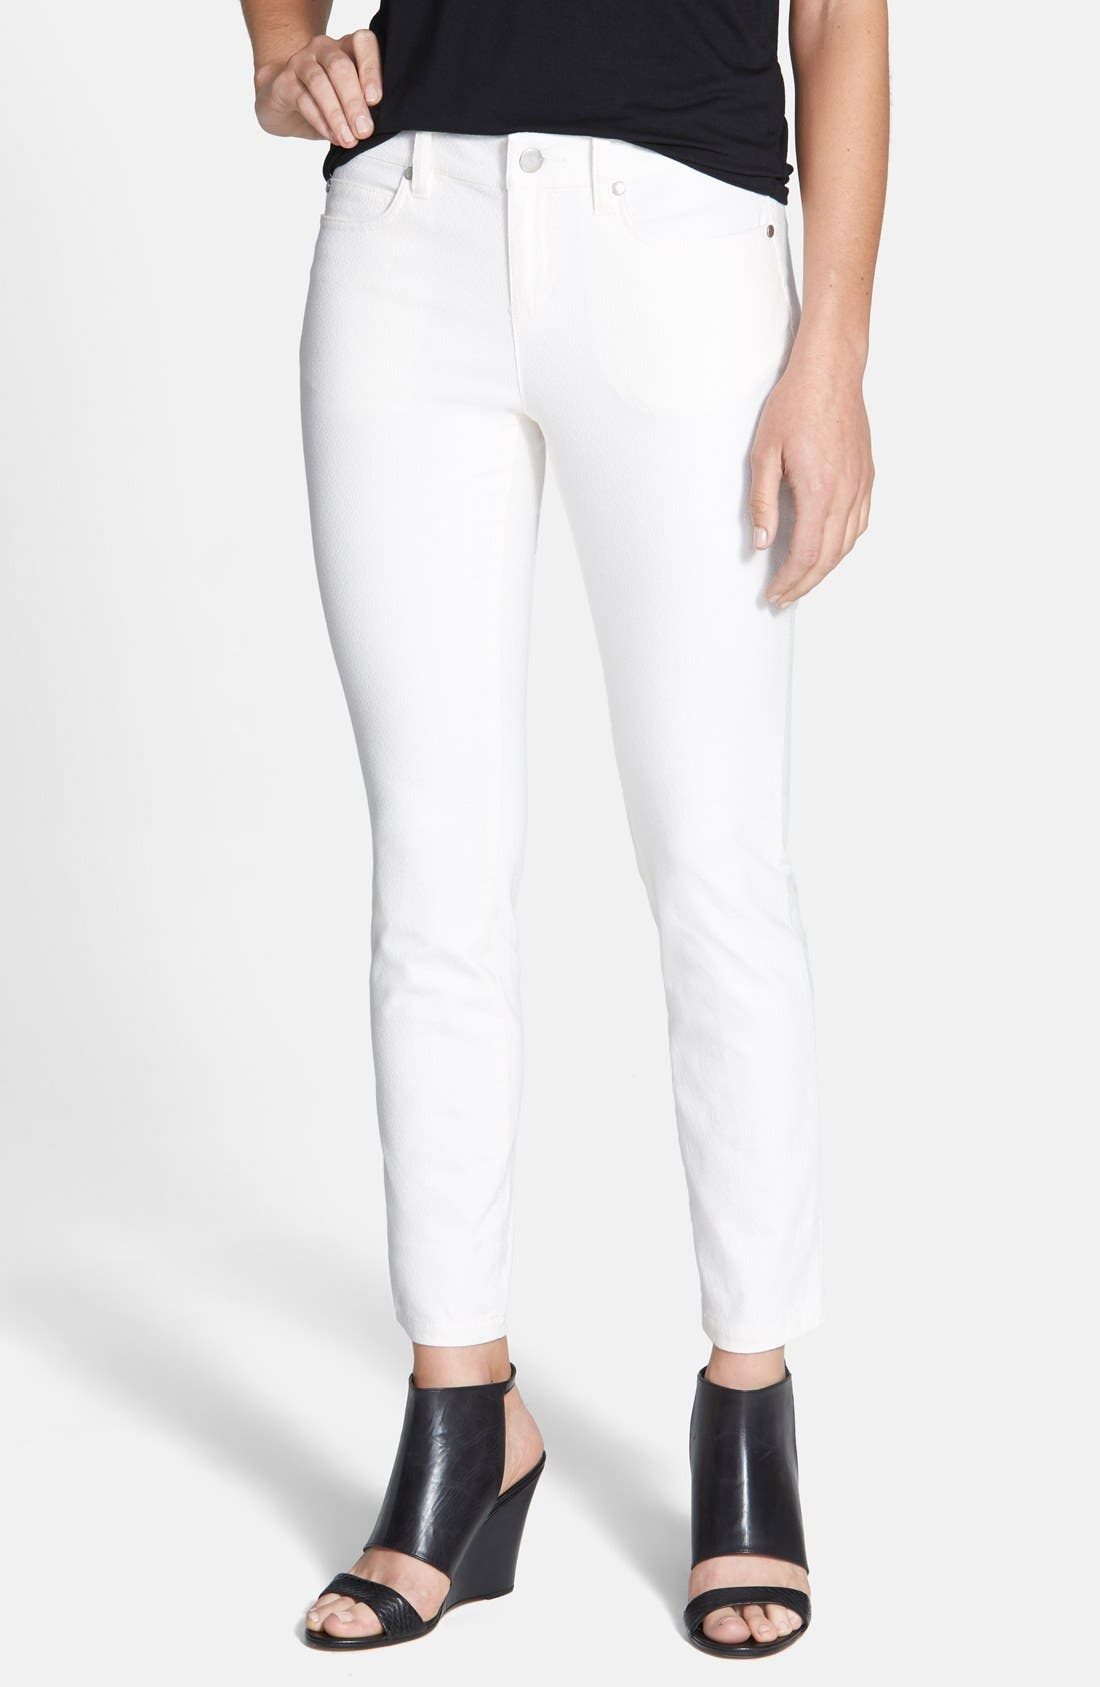 Main Image - Eileen Fisher Ankle Skinny Jeans (Soft White) (Petite)